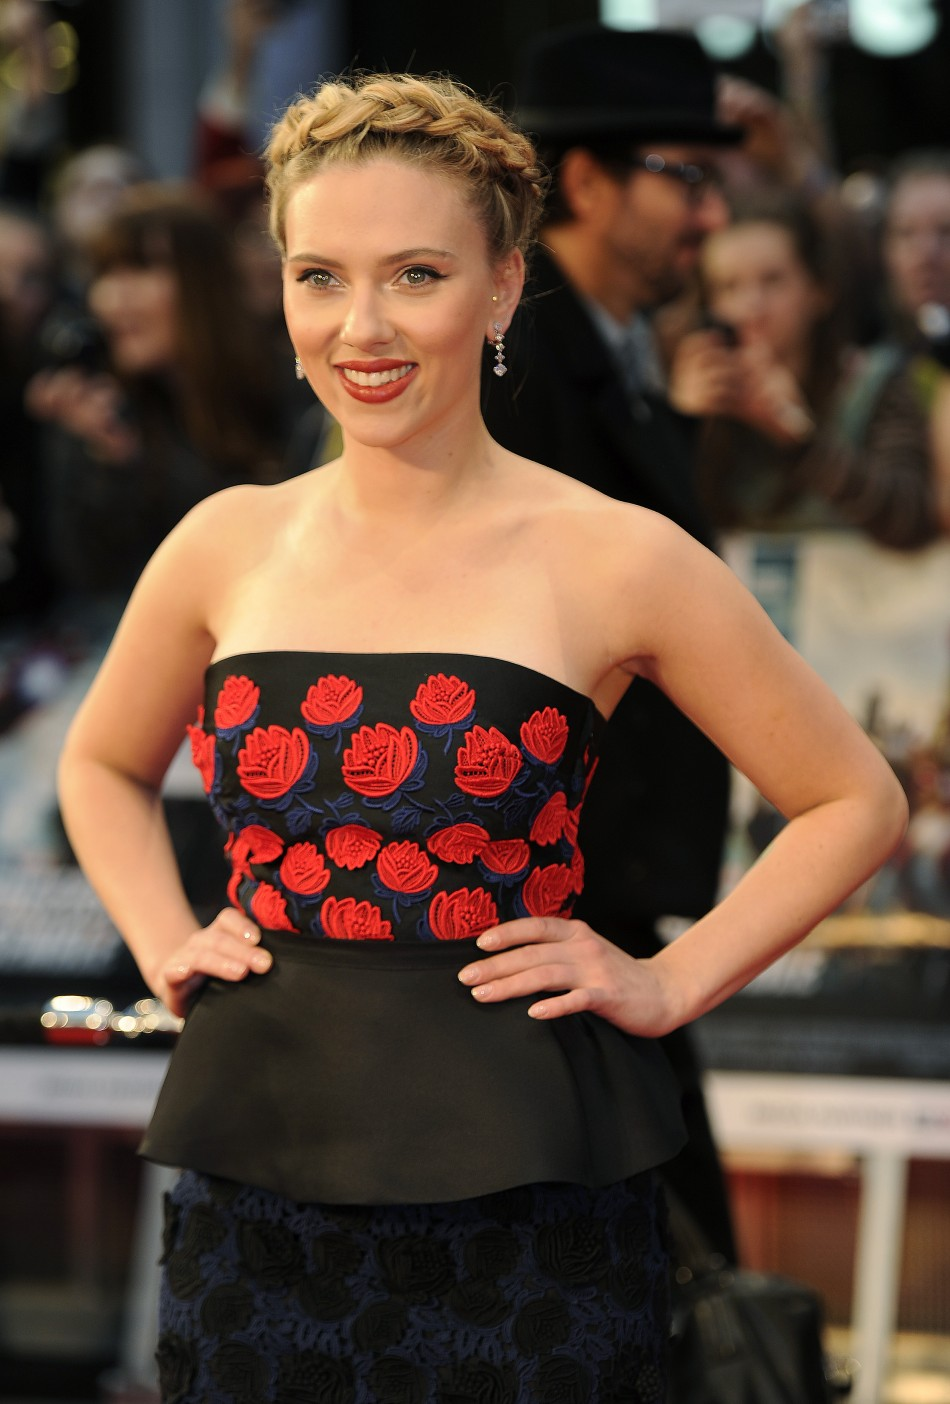 Scarlett Johansson in European 'Avengers' Premiere Red Carpet